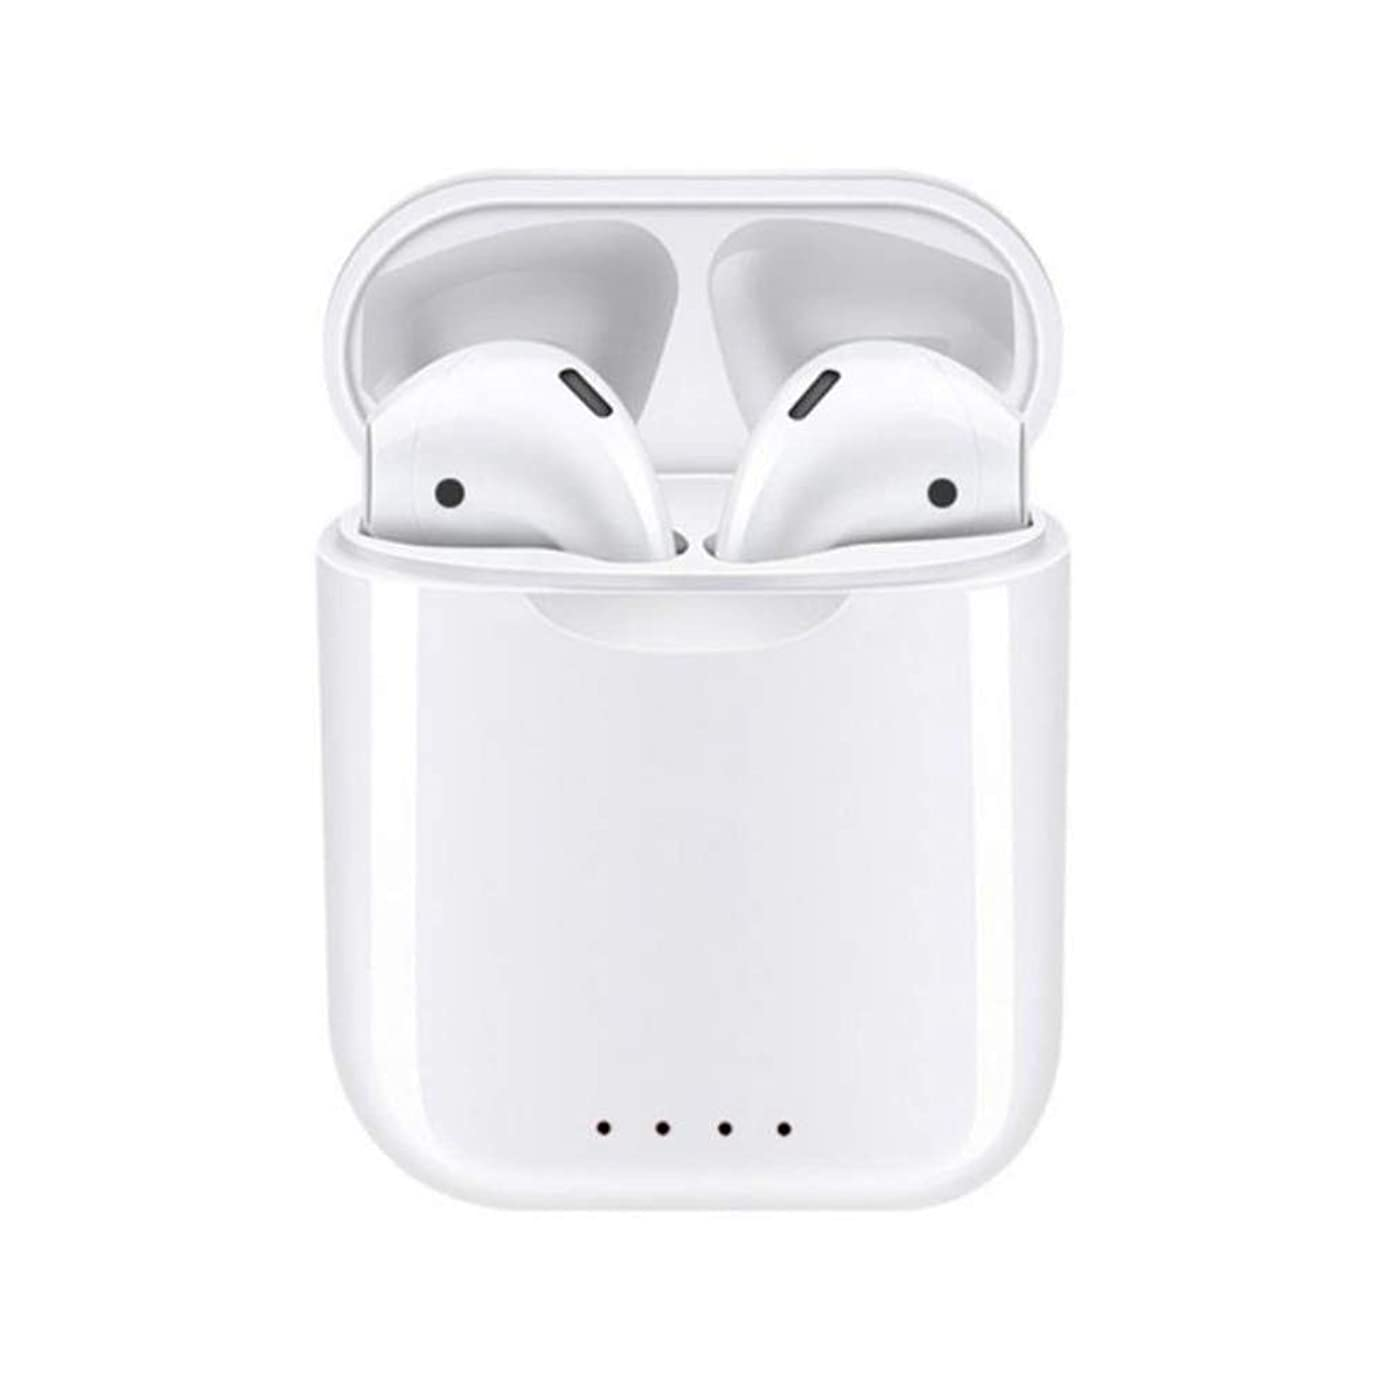 i-88 TWS Bluetooth Earbuds V5.0 Wireless Headphones with Magnetic Charging Box,Smart Touch Control.Noise Cancelling with Mic Charging Case. Compatible with iOS & Android.(White)